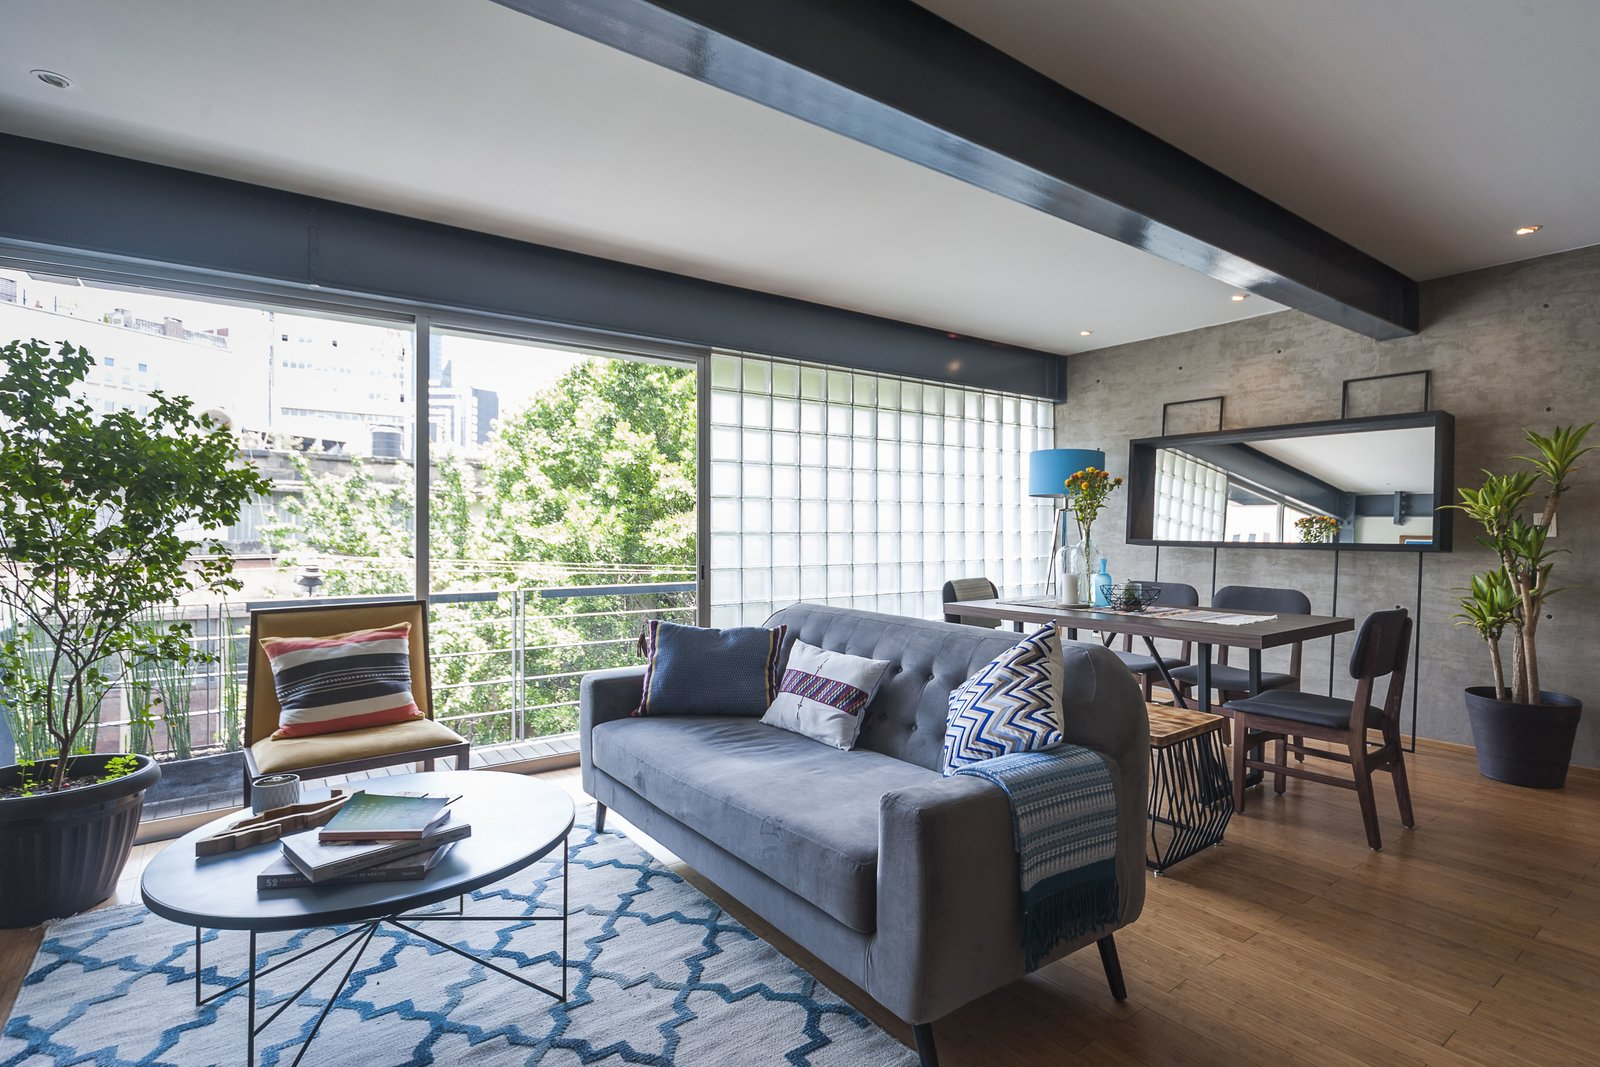 Tagged: Living Room, Sofa, Chair, Coffee Tables, Rug Floor, Recessed Lighting, Medium Hardwood Floor, and Table.  Best Photos from 7 Stylish Pads to Rent in Mexico City